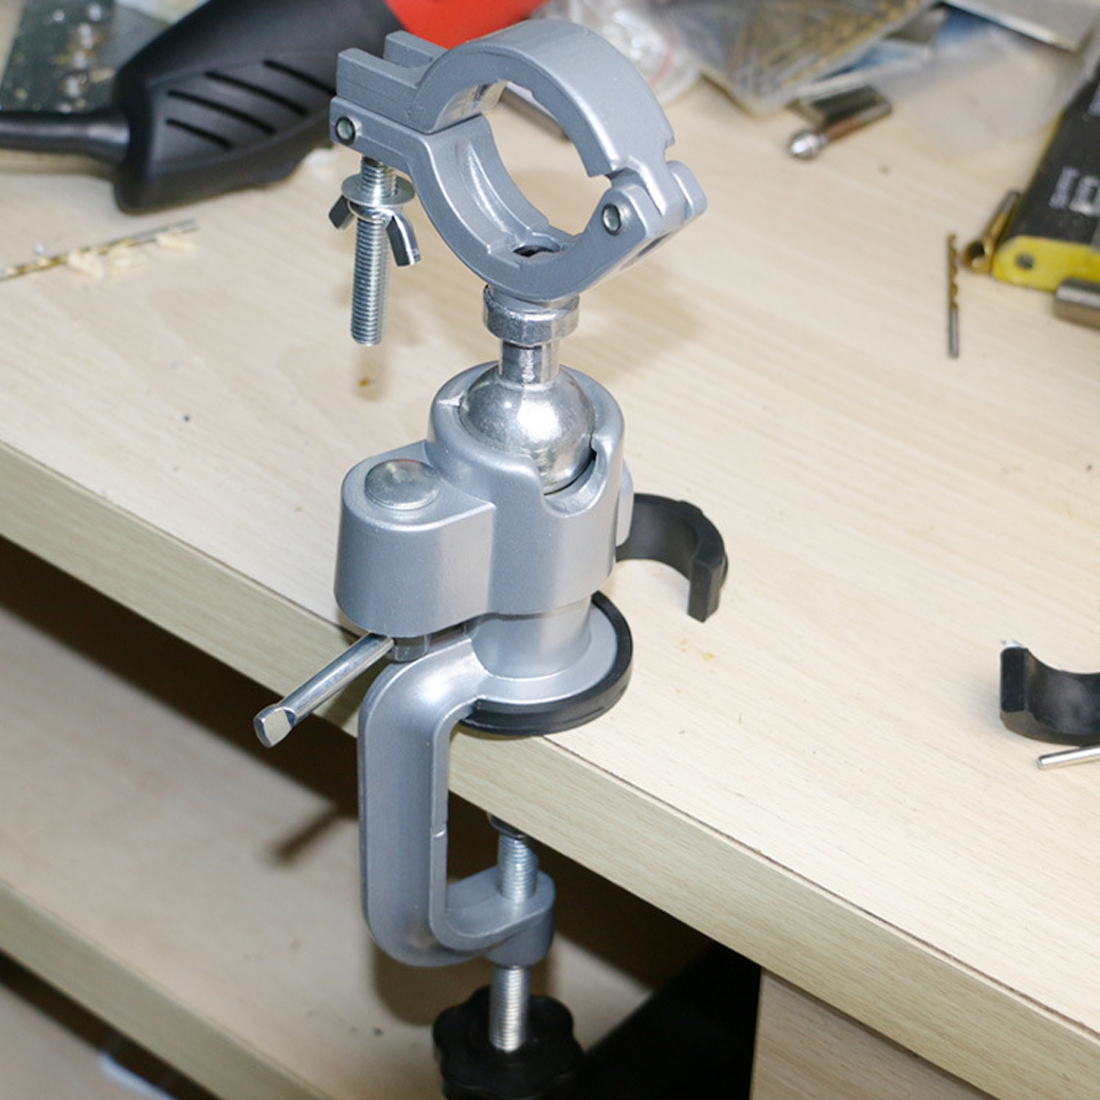 Electric Drill Stand Holder Bracket Used For Dremel Mini Drill Multifunctional Die Grinder Power Grinder Accessory